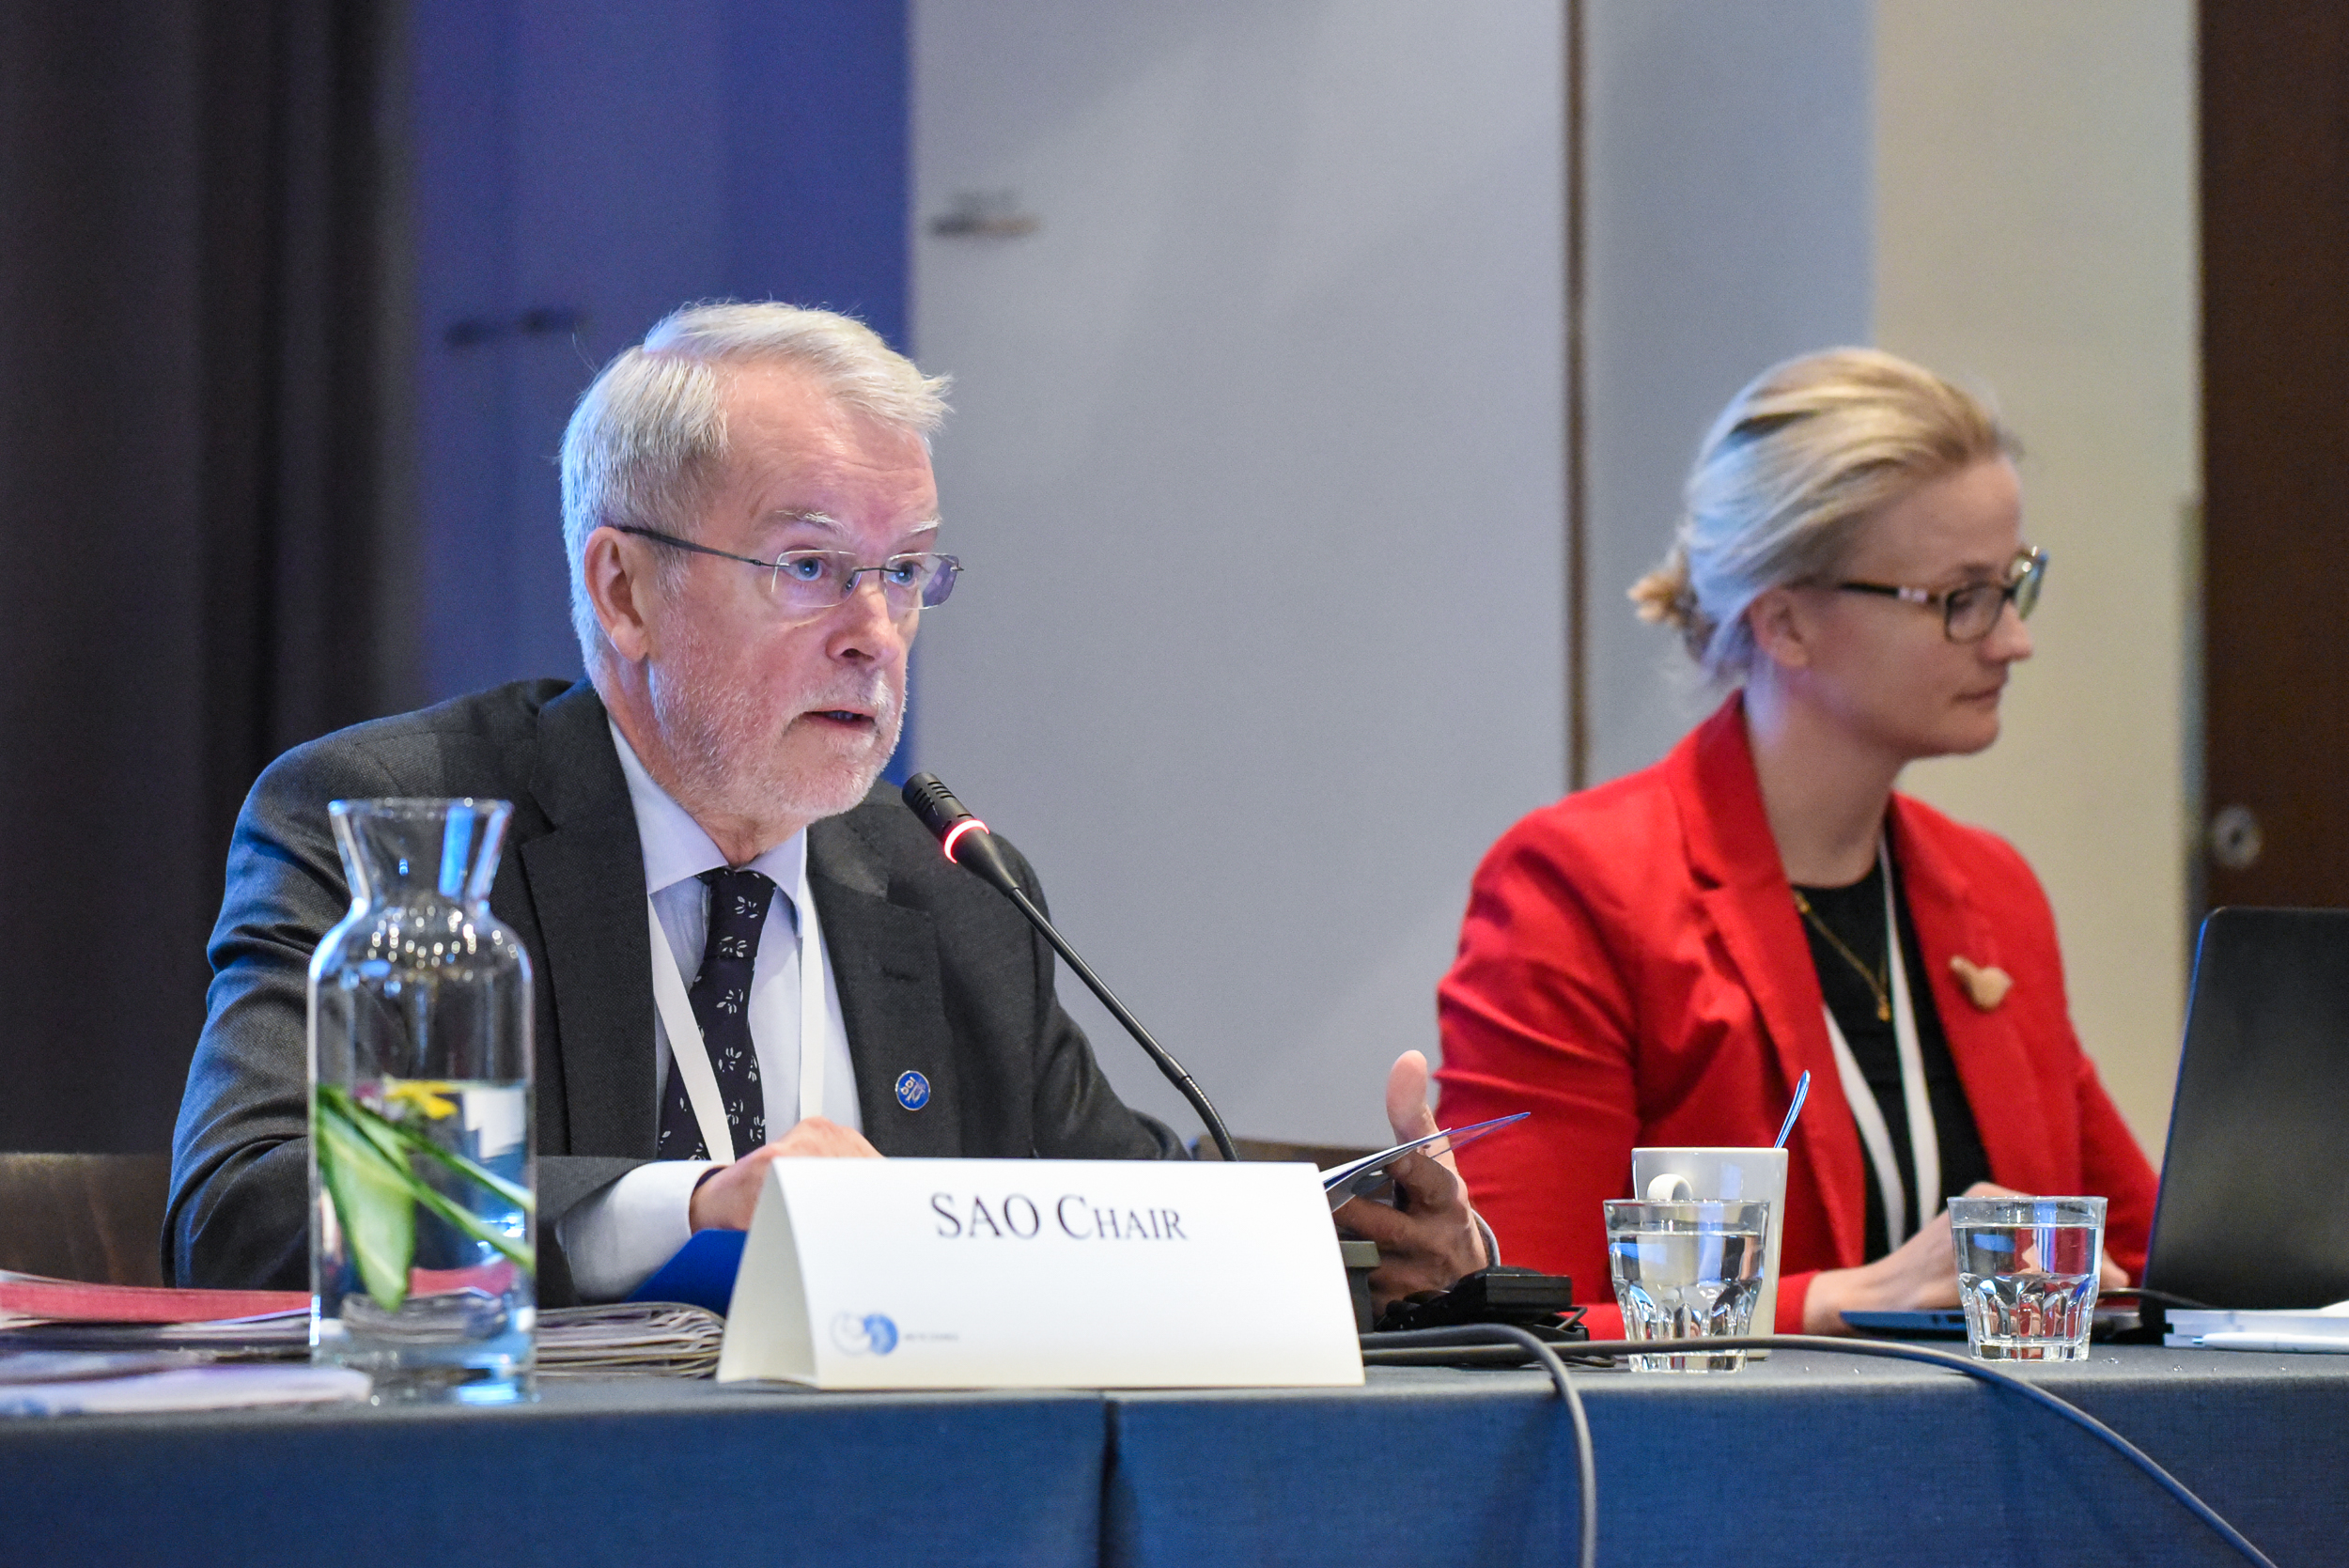 Environment, education top agenda at first Arctic Council meeting under Finnish leadership.